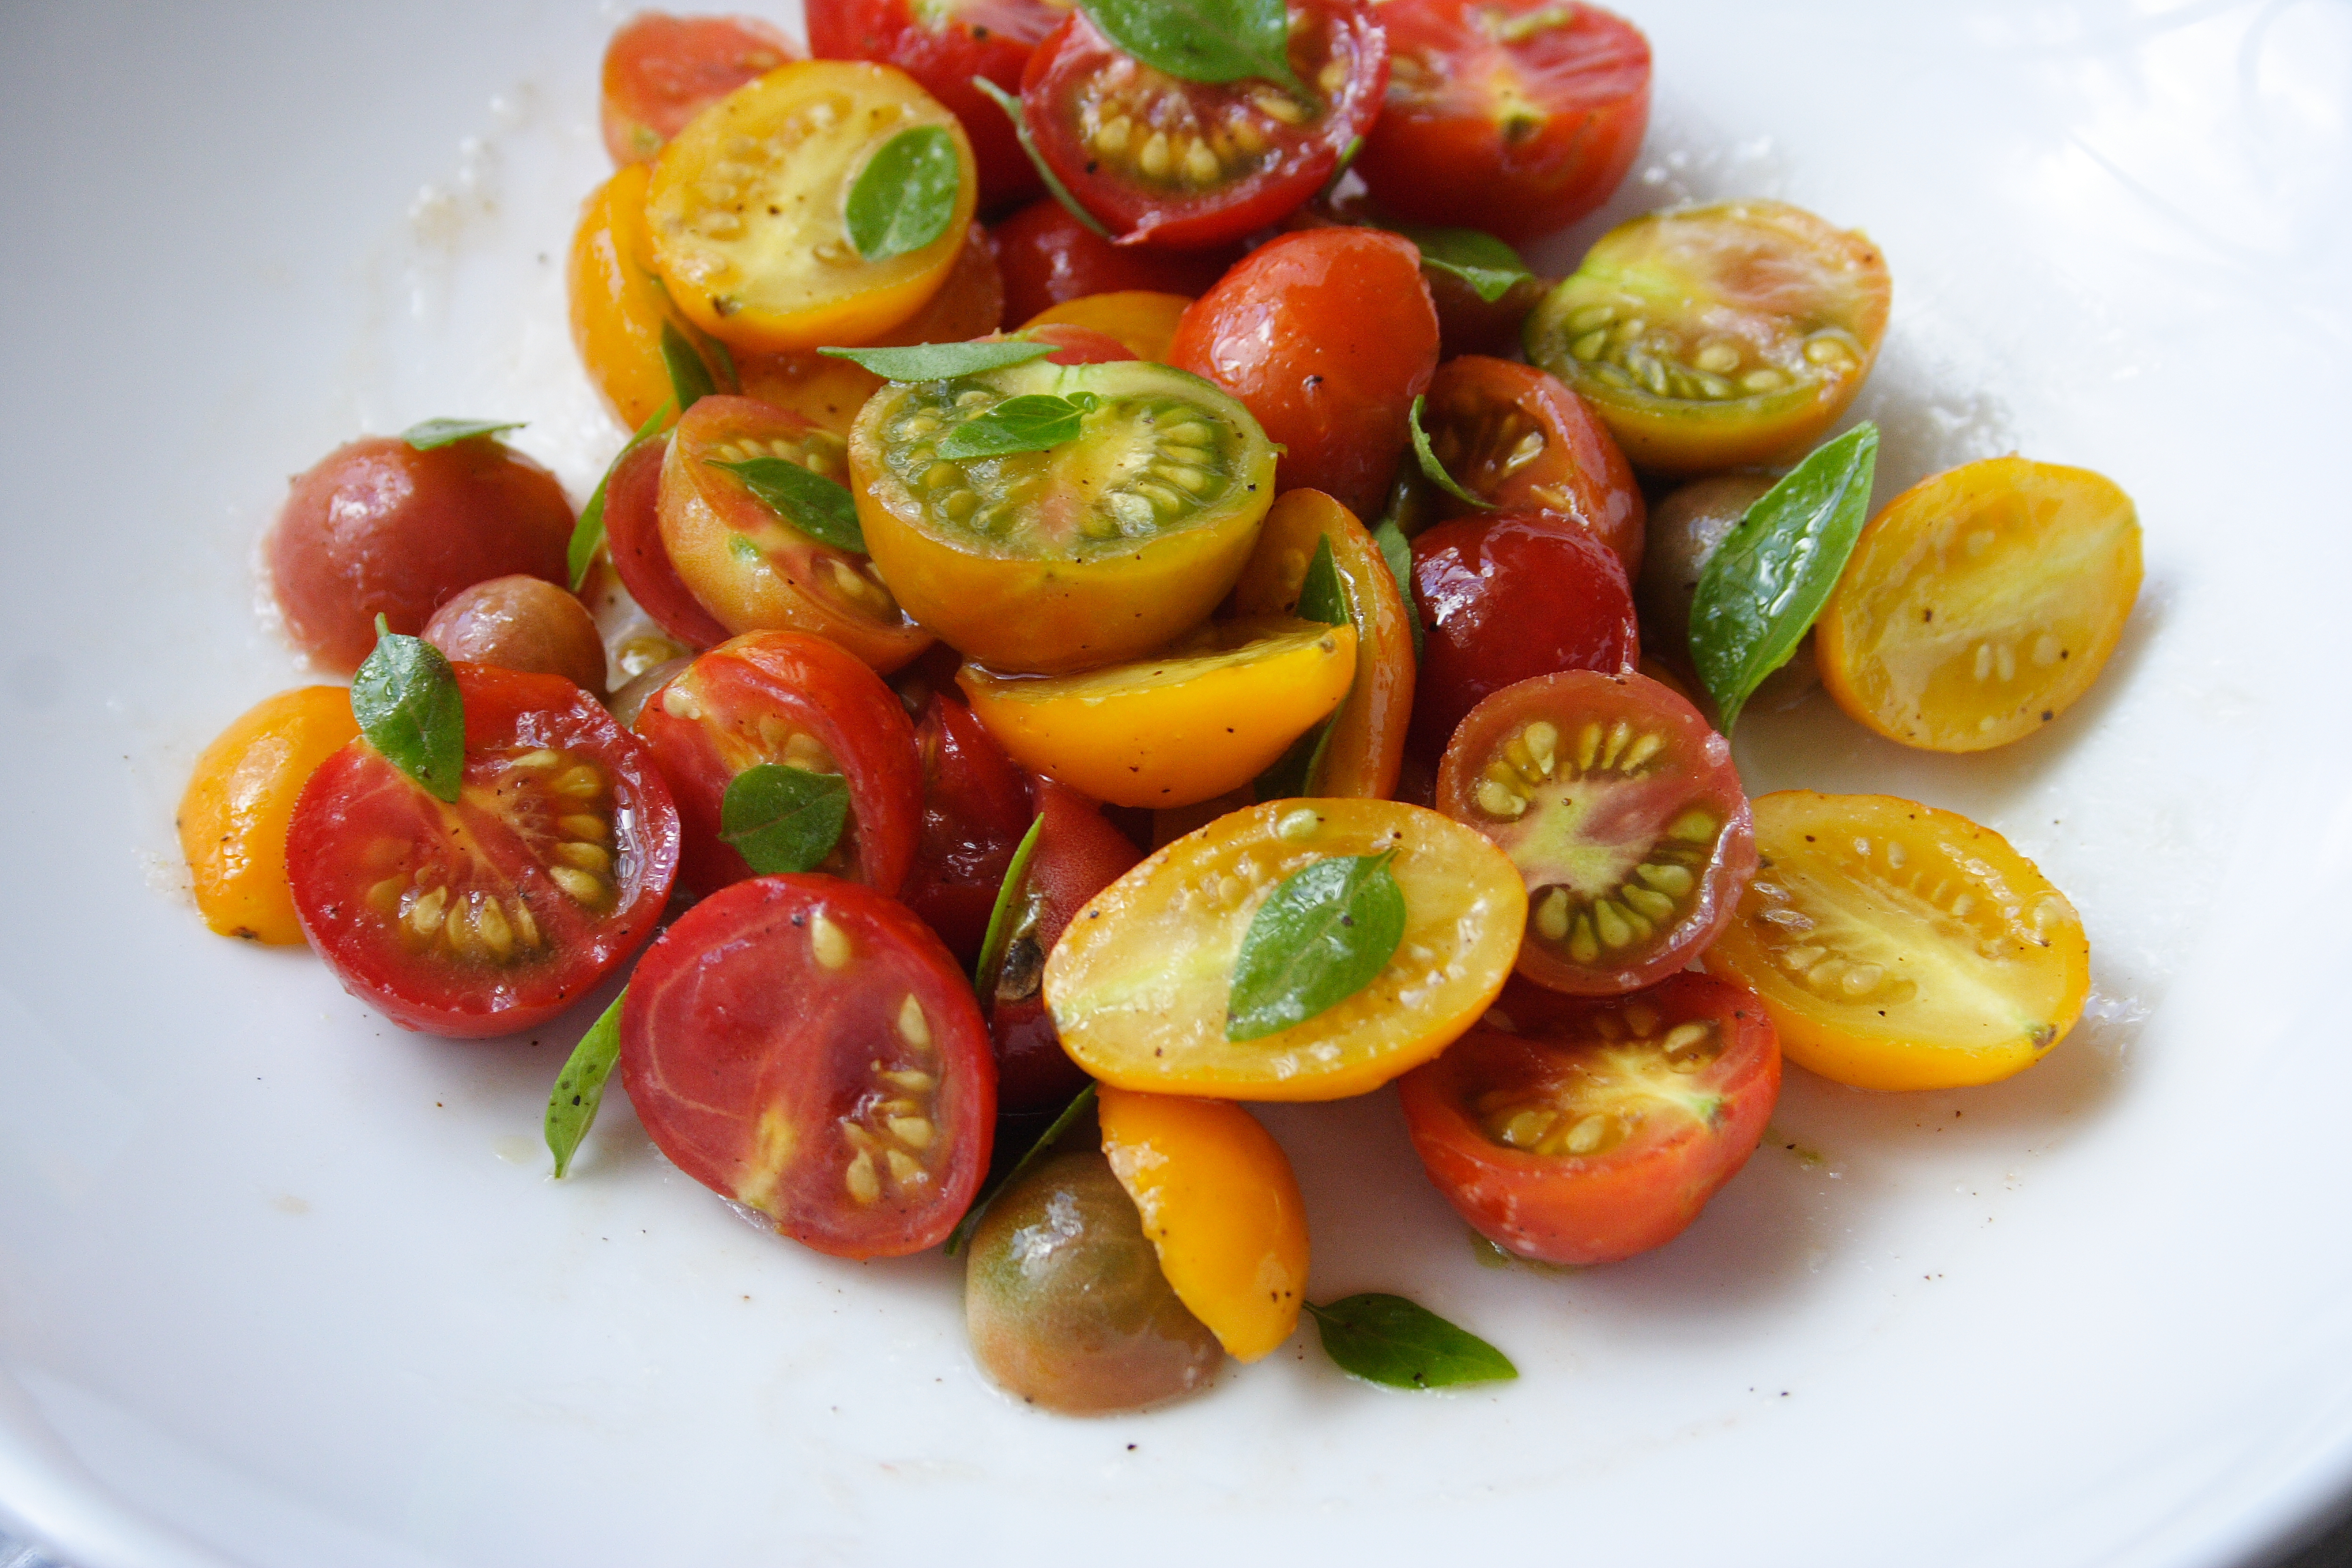 Plated cherry tomato salad.